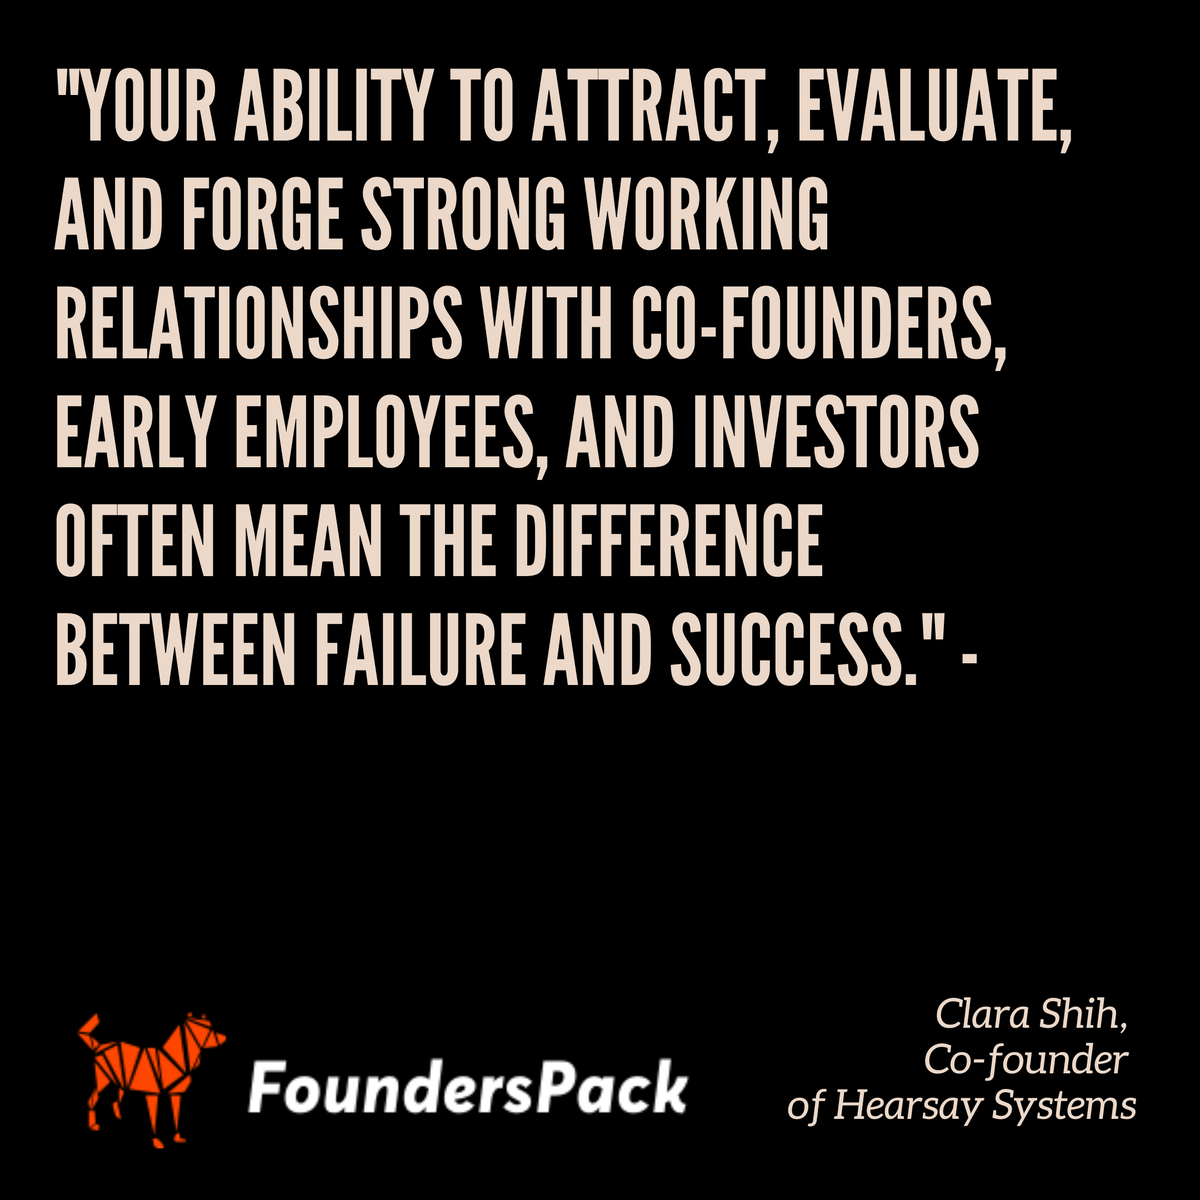 #entrepreneurquotes #startupquotes #founderspack #founder #startuppic.twitter.com/ZrSEycuOFN